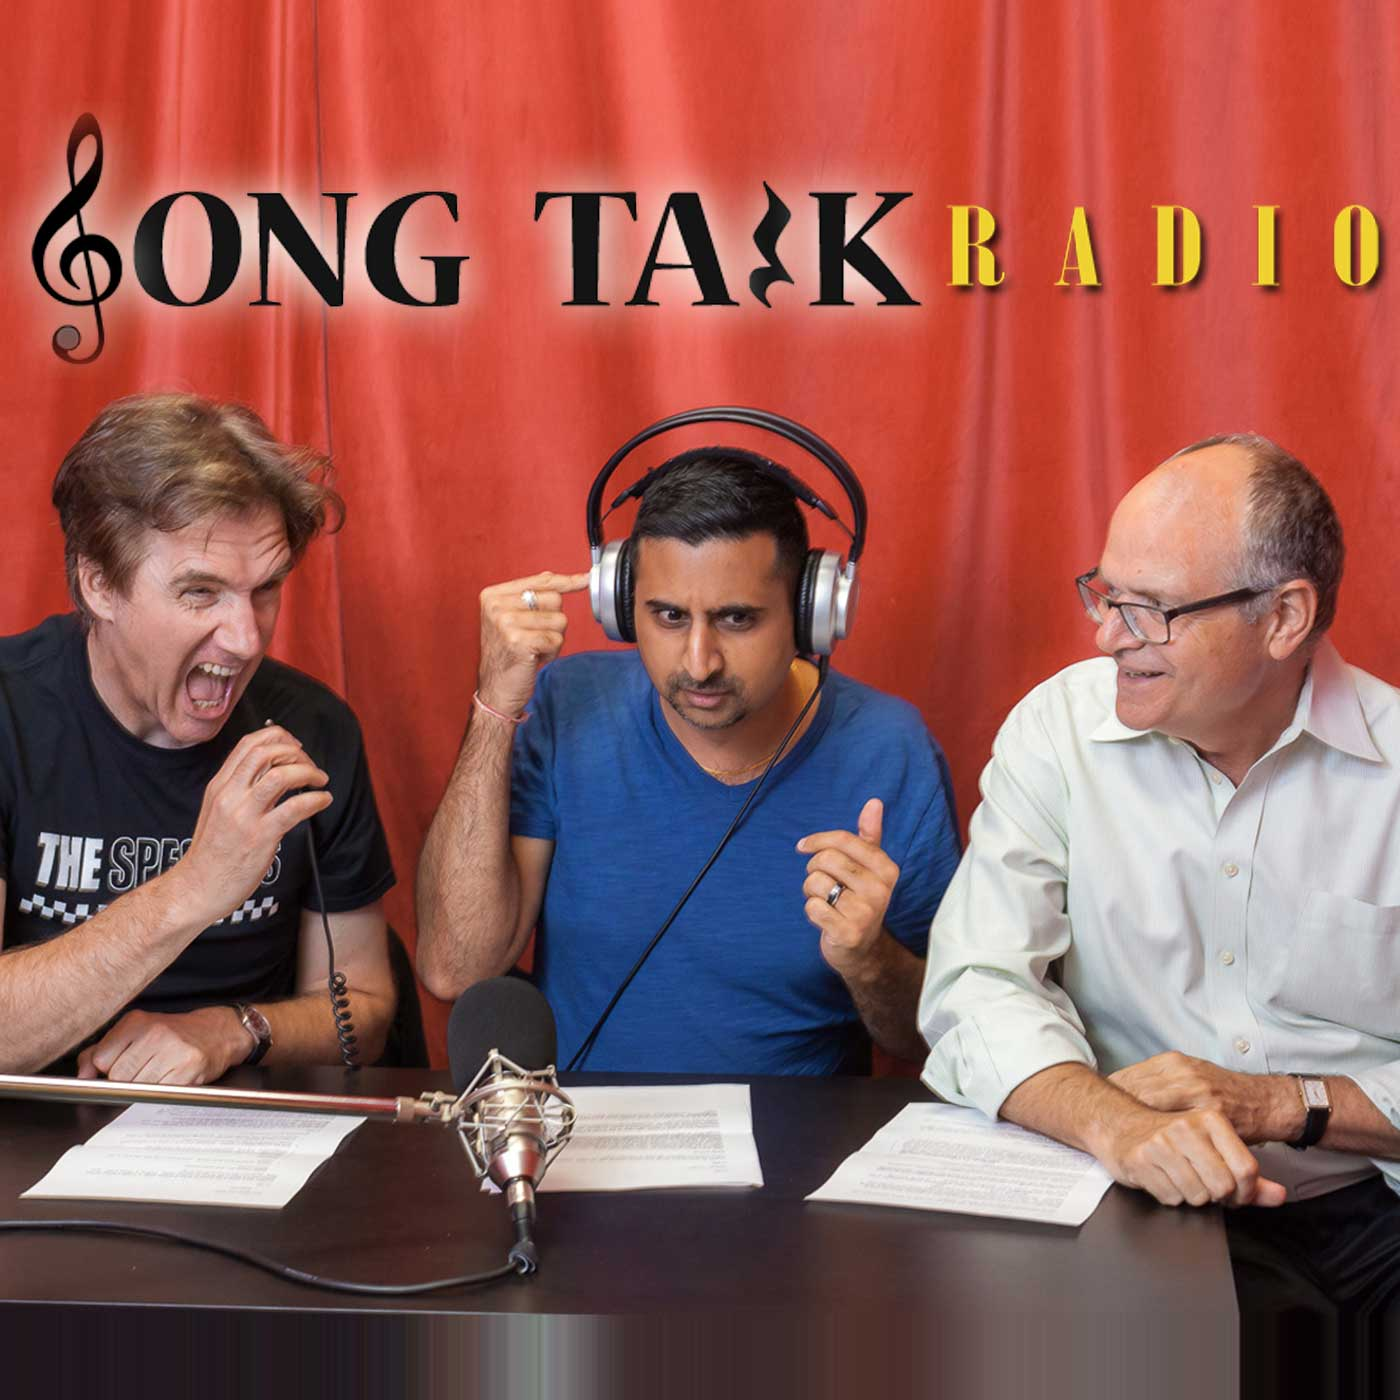 Song Talk Radio with Bruce, Neel & Phil | Songwriting | Lyrics | Arranging | Live Feedback